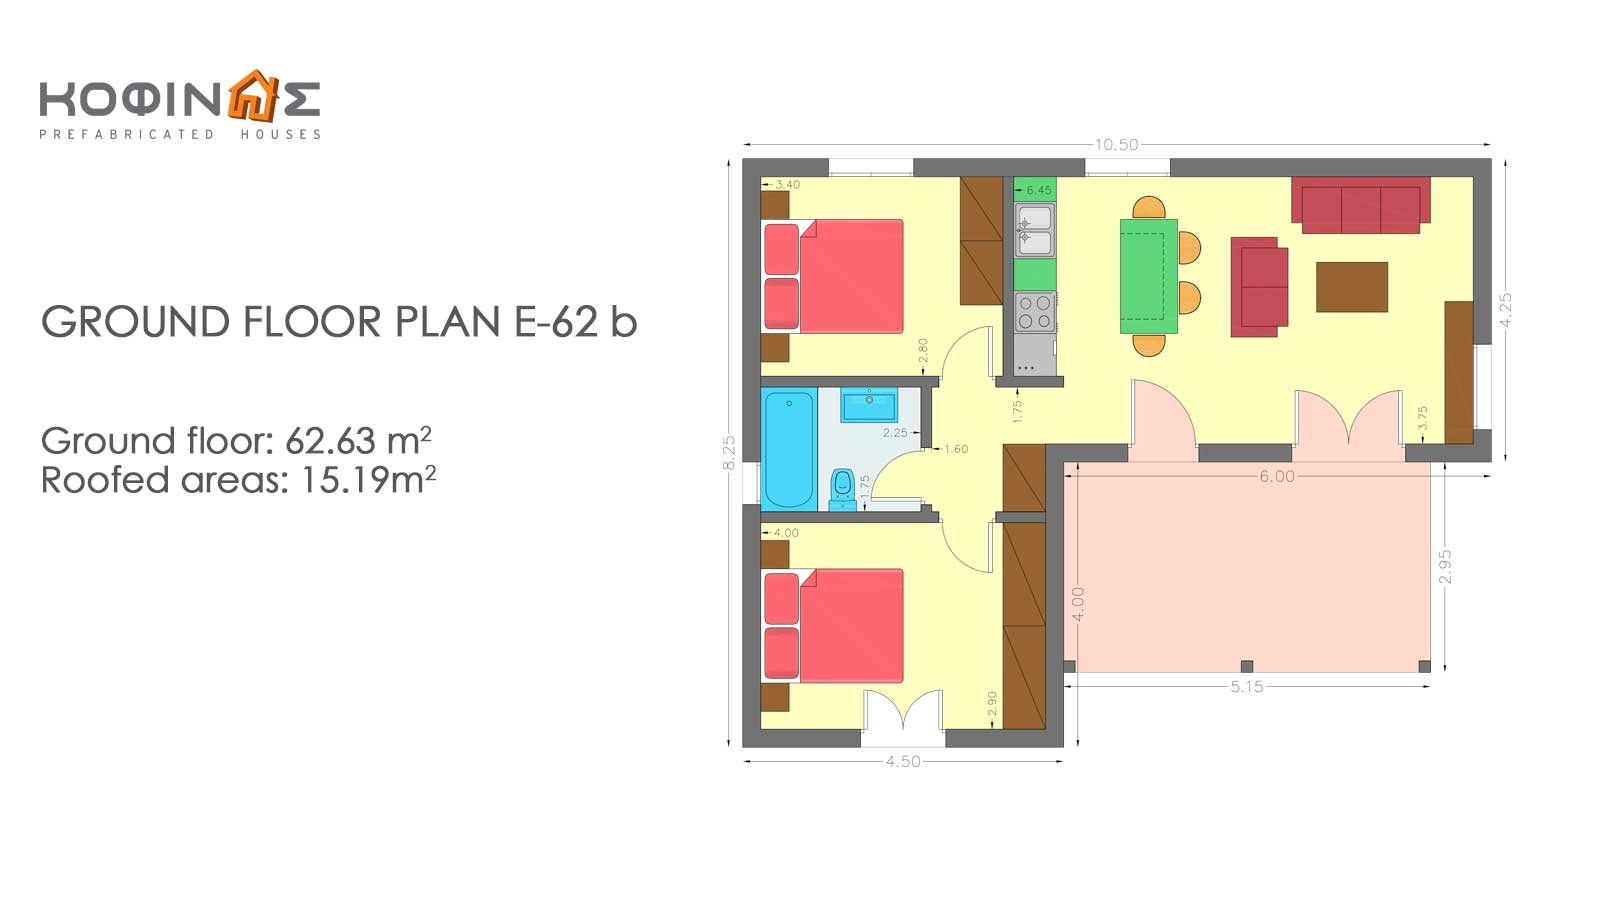 Complex of 1-story houses E-62b, total surface of 3 x 62,63 = 187,89 m²